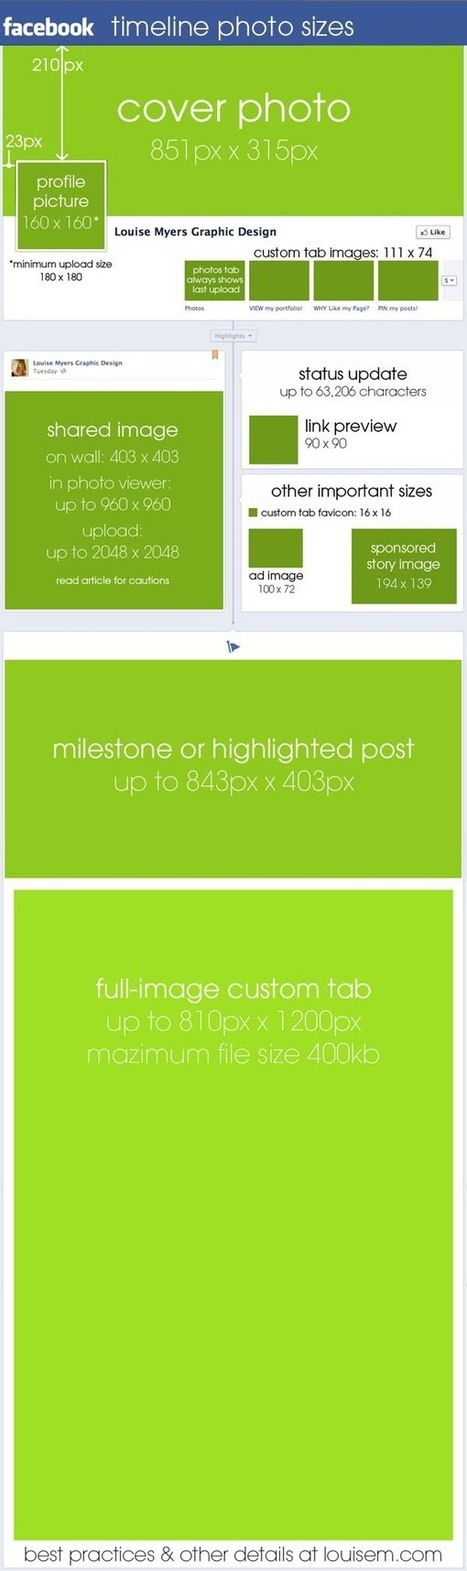 The Ultimate Guide to Facebook Timeline Image Dimensions & Sizes (Infographic) | Facebook (par Diane Bourque) | Scoop.it